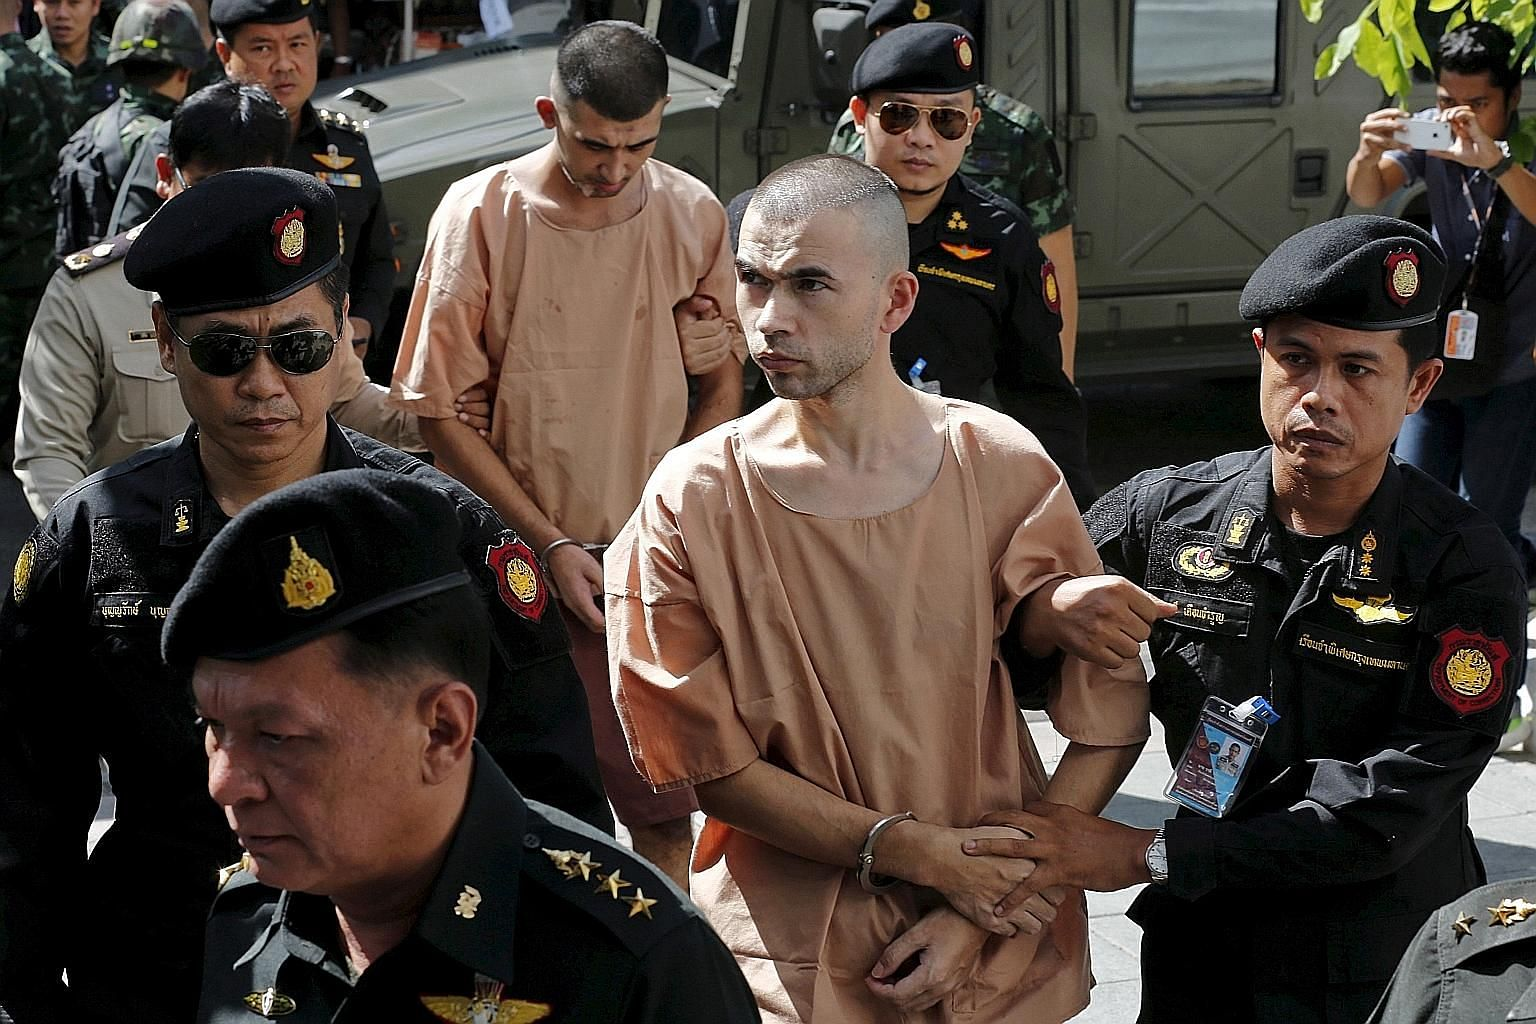 Adem Karadag (in front) and Yusufu Mieraili denied they were involved in last year's deadly Bangkok shrine bombing.